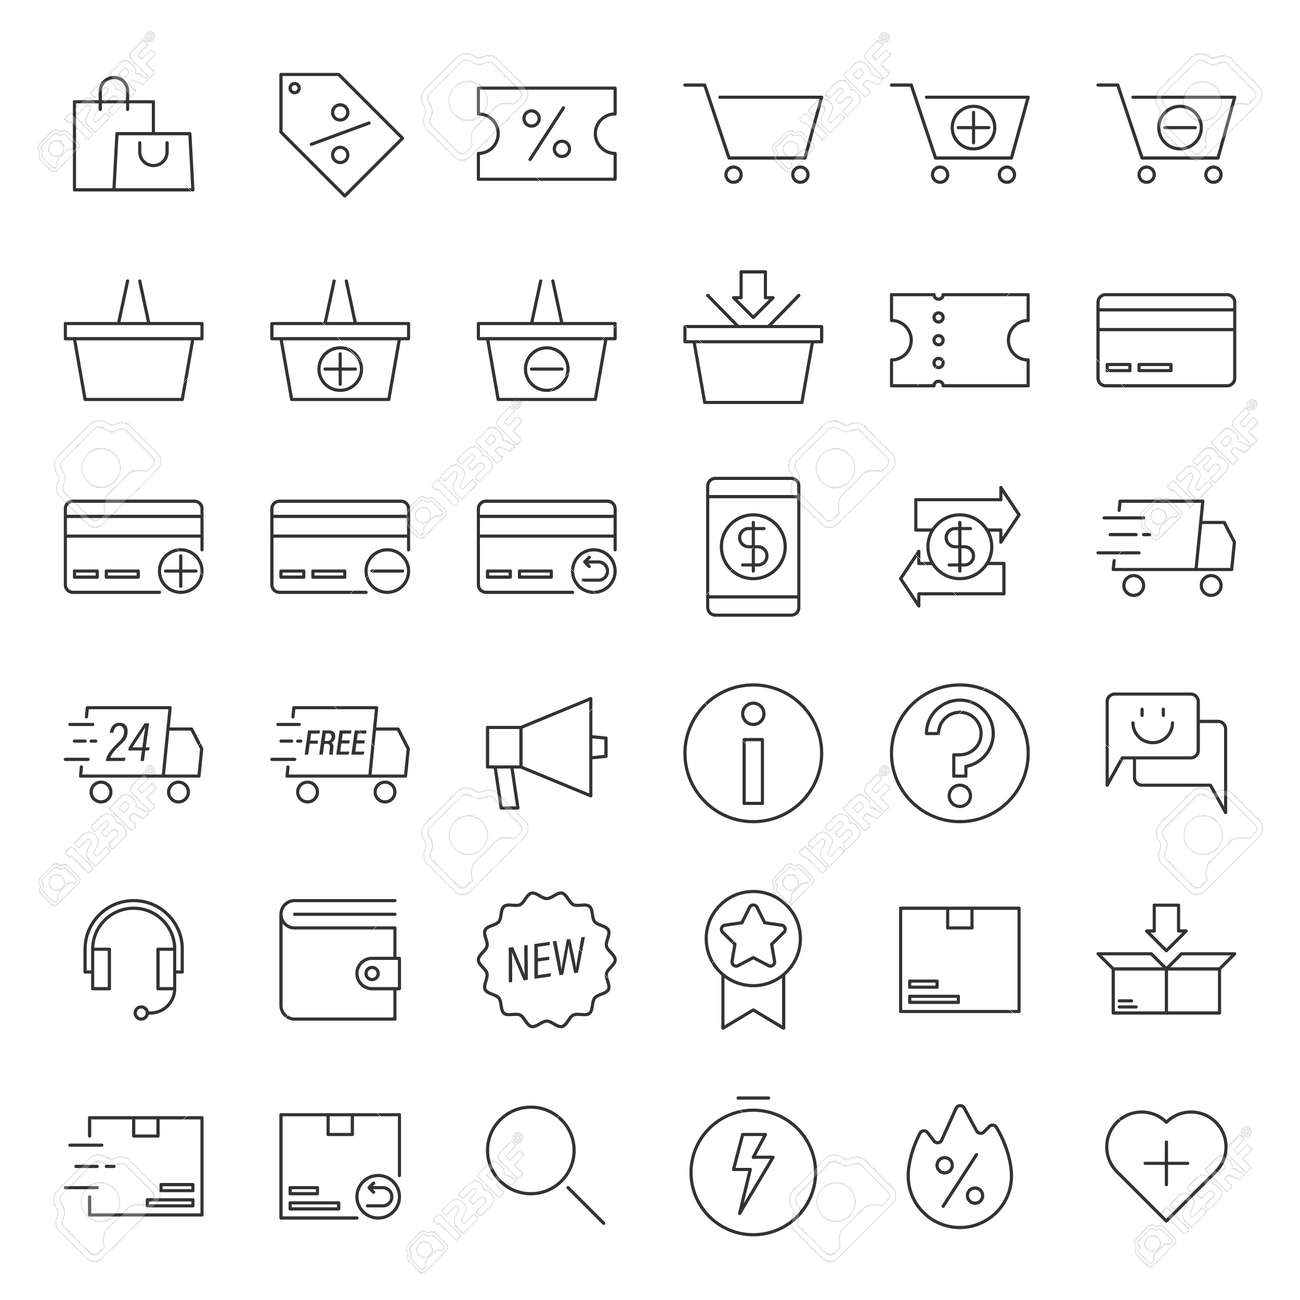 Simple icon set contains such Icons as shopping bag, shopping cart, delivery and more - 164557994